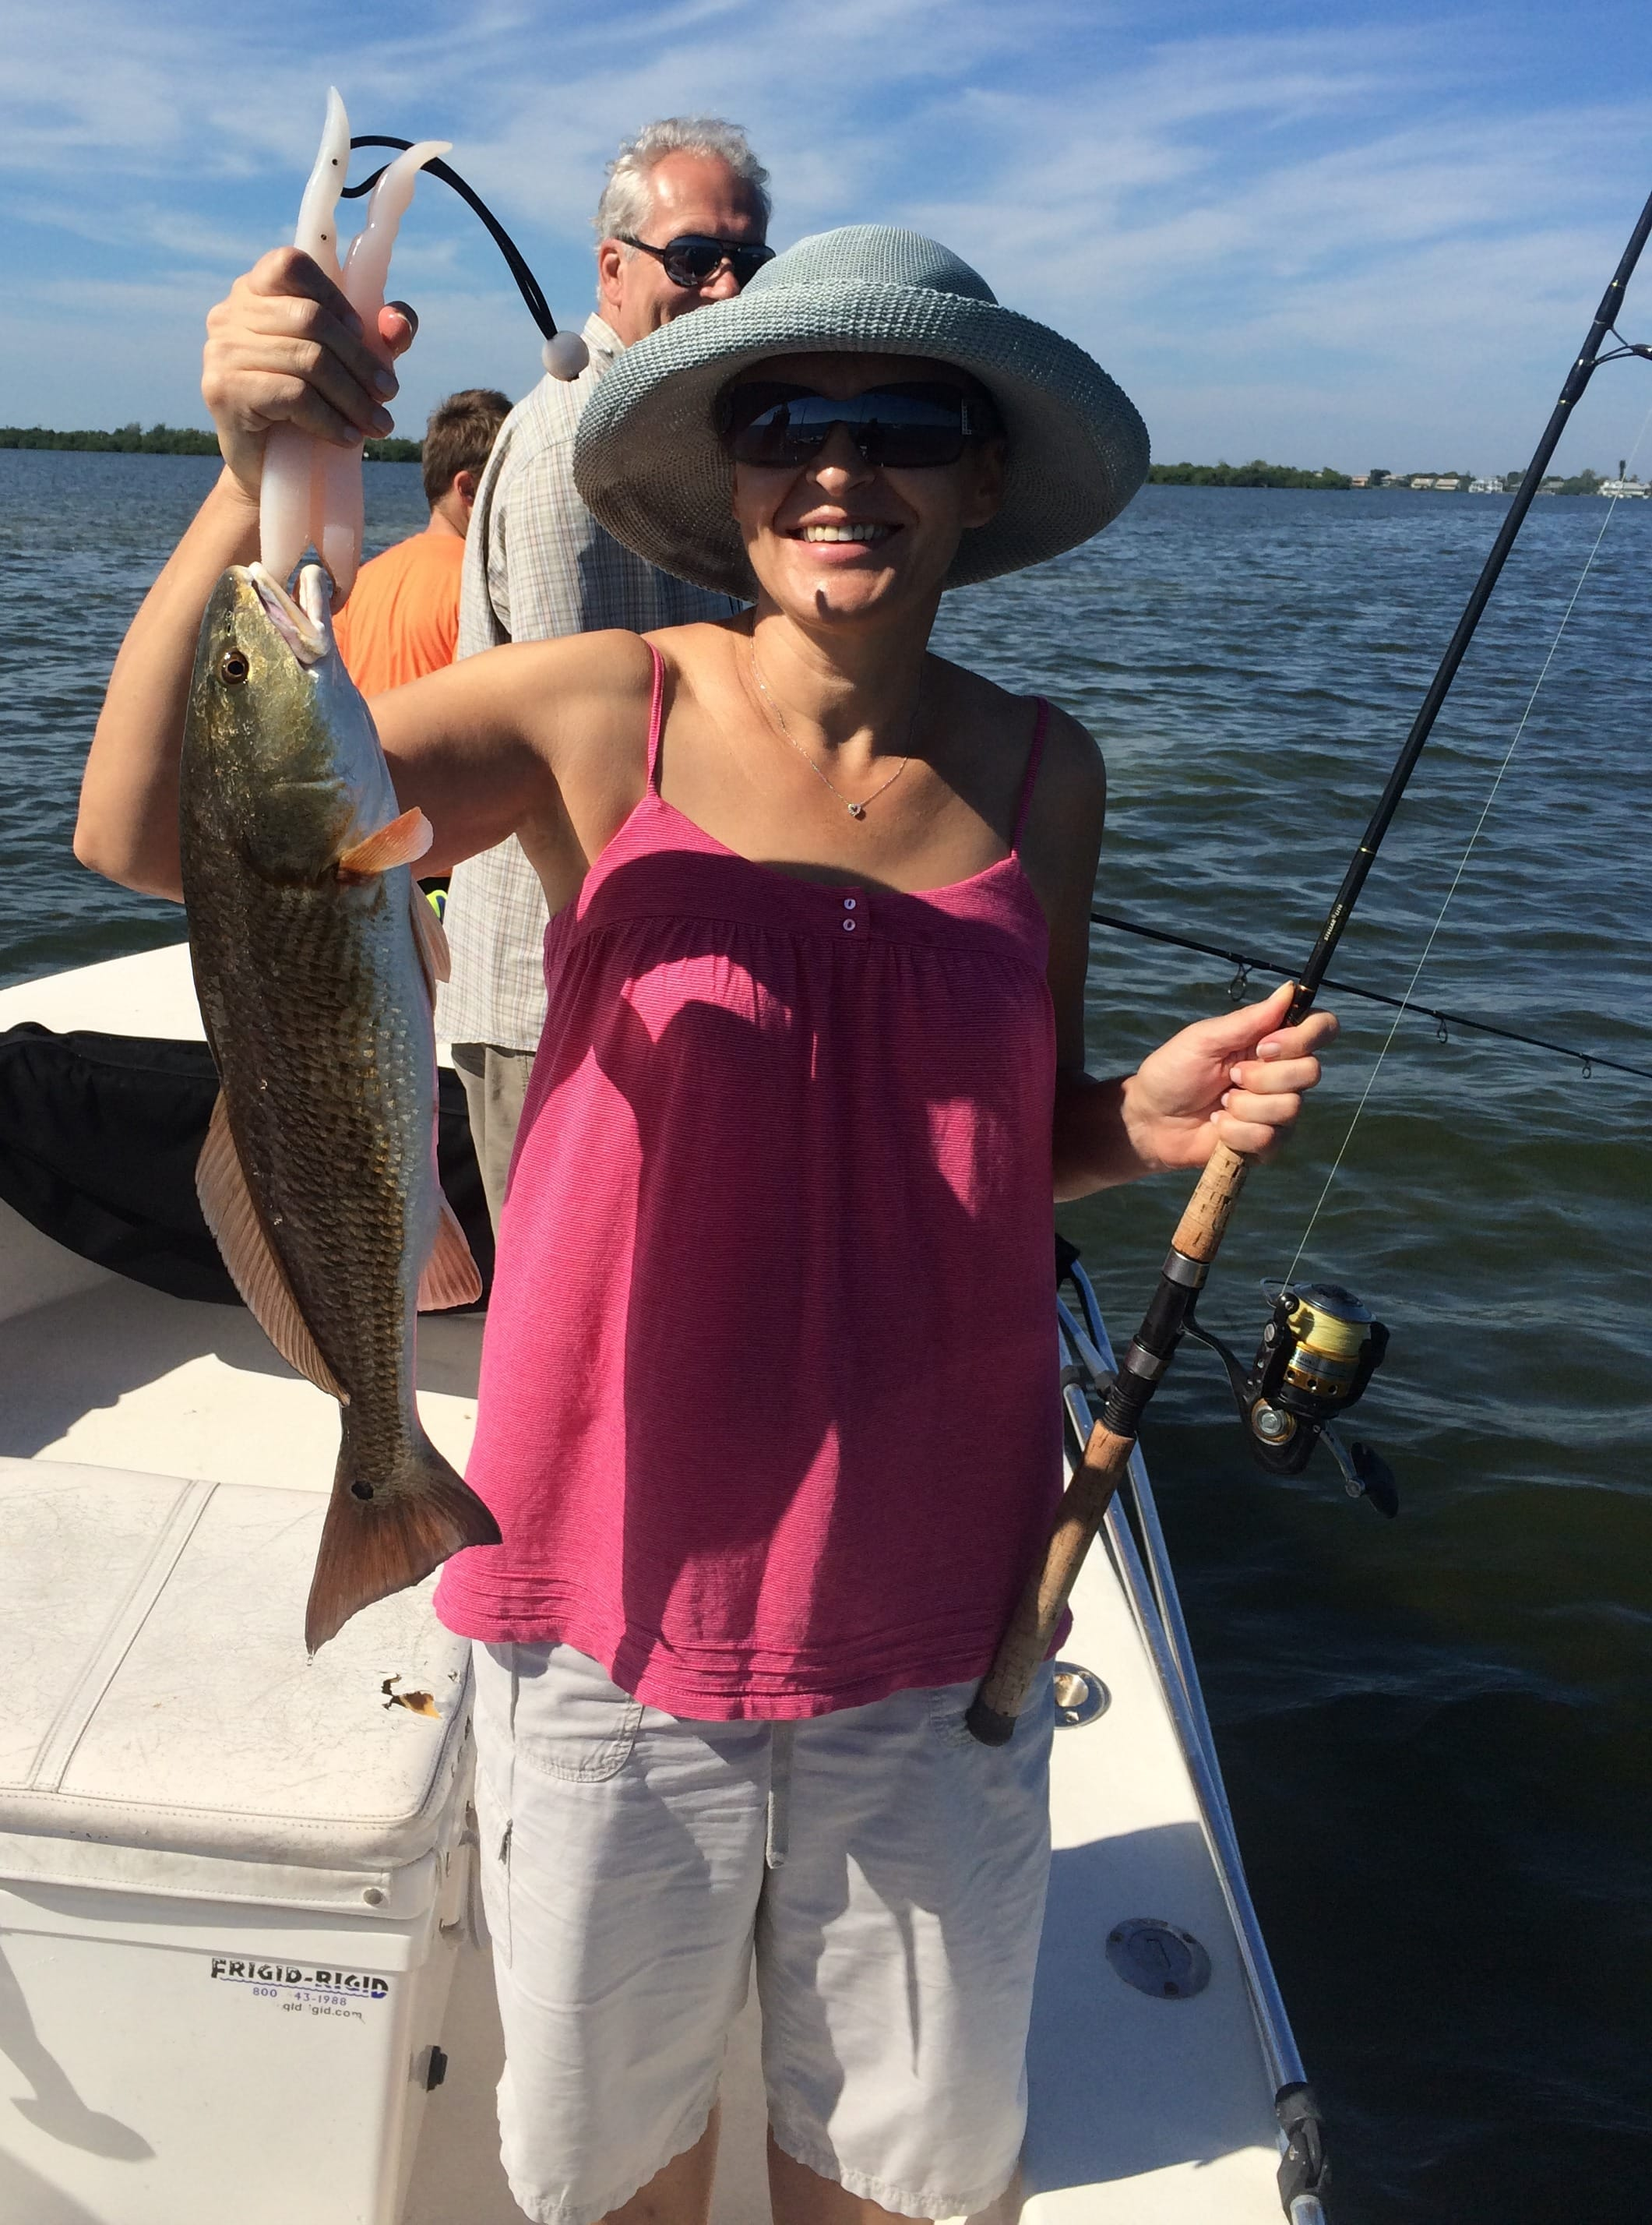 Fort myers fishing report 10 25 14 more redfish for Fishing charters fort myers